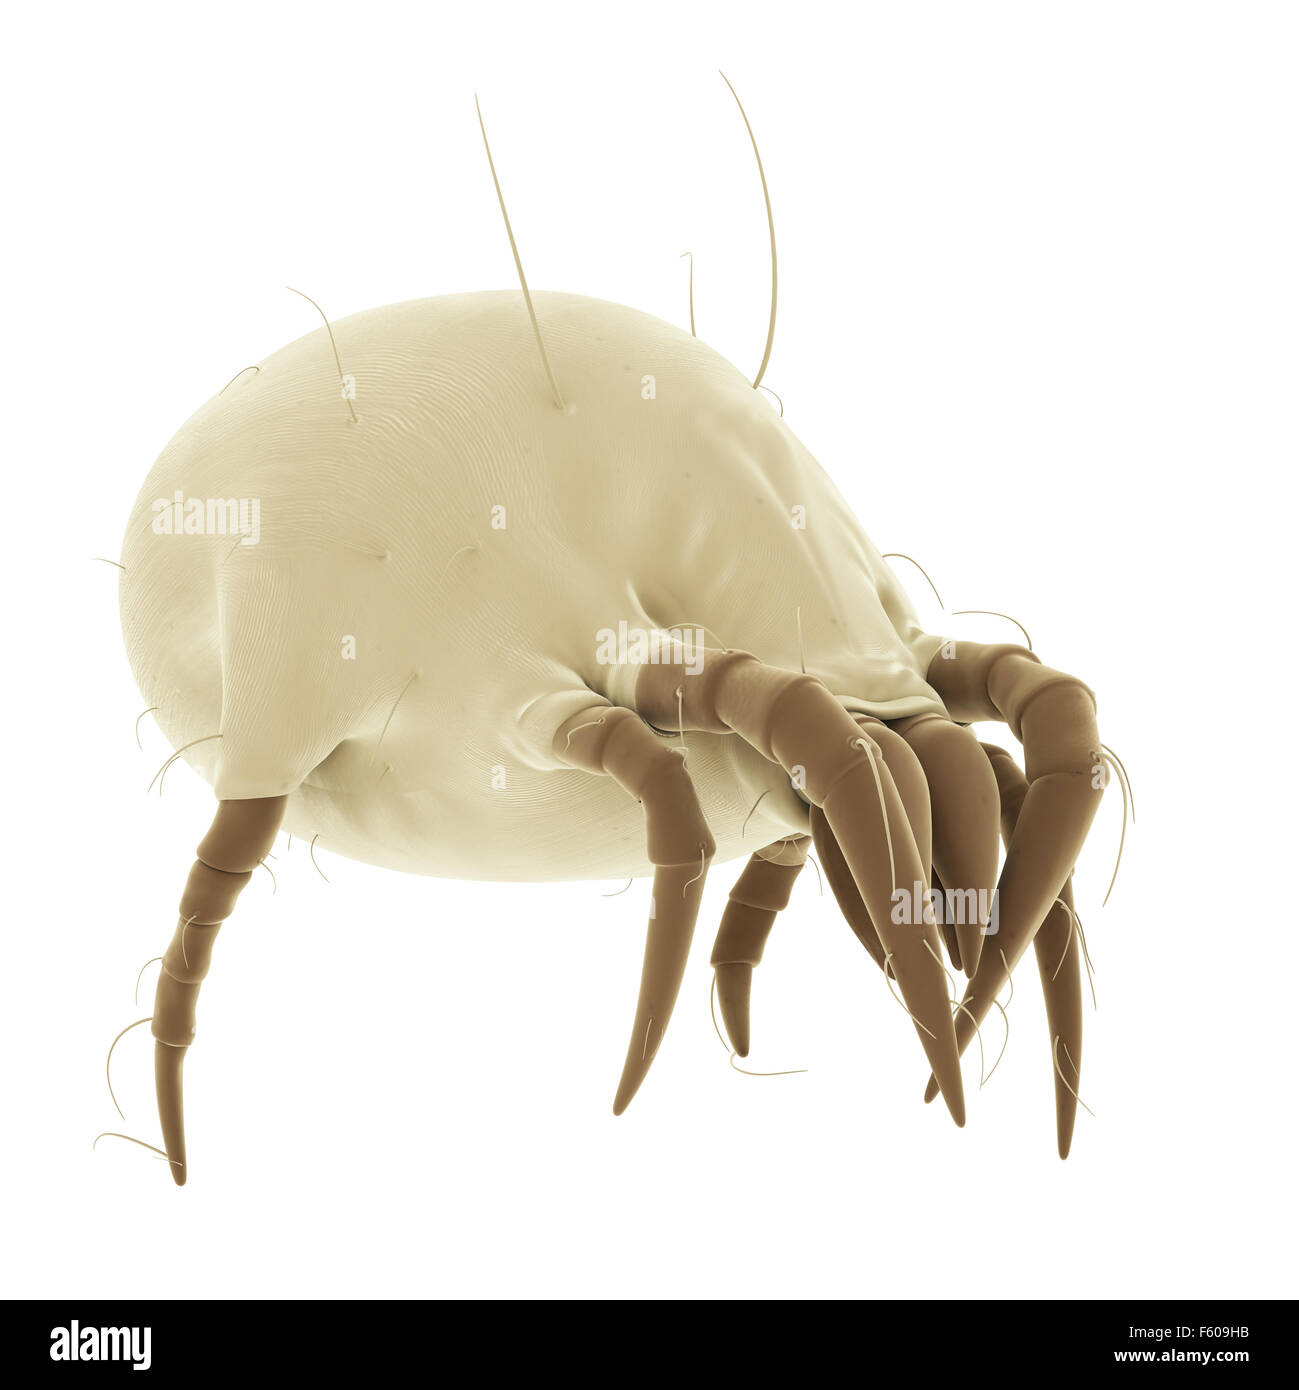 medically accurate illustration of a common dust mite - Stock Image